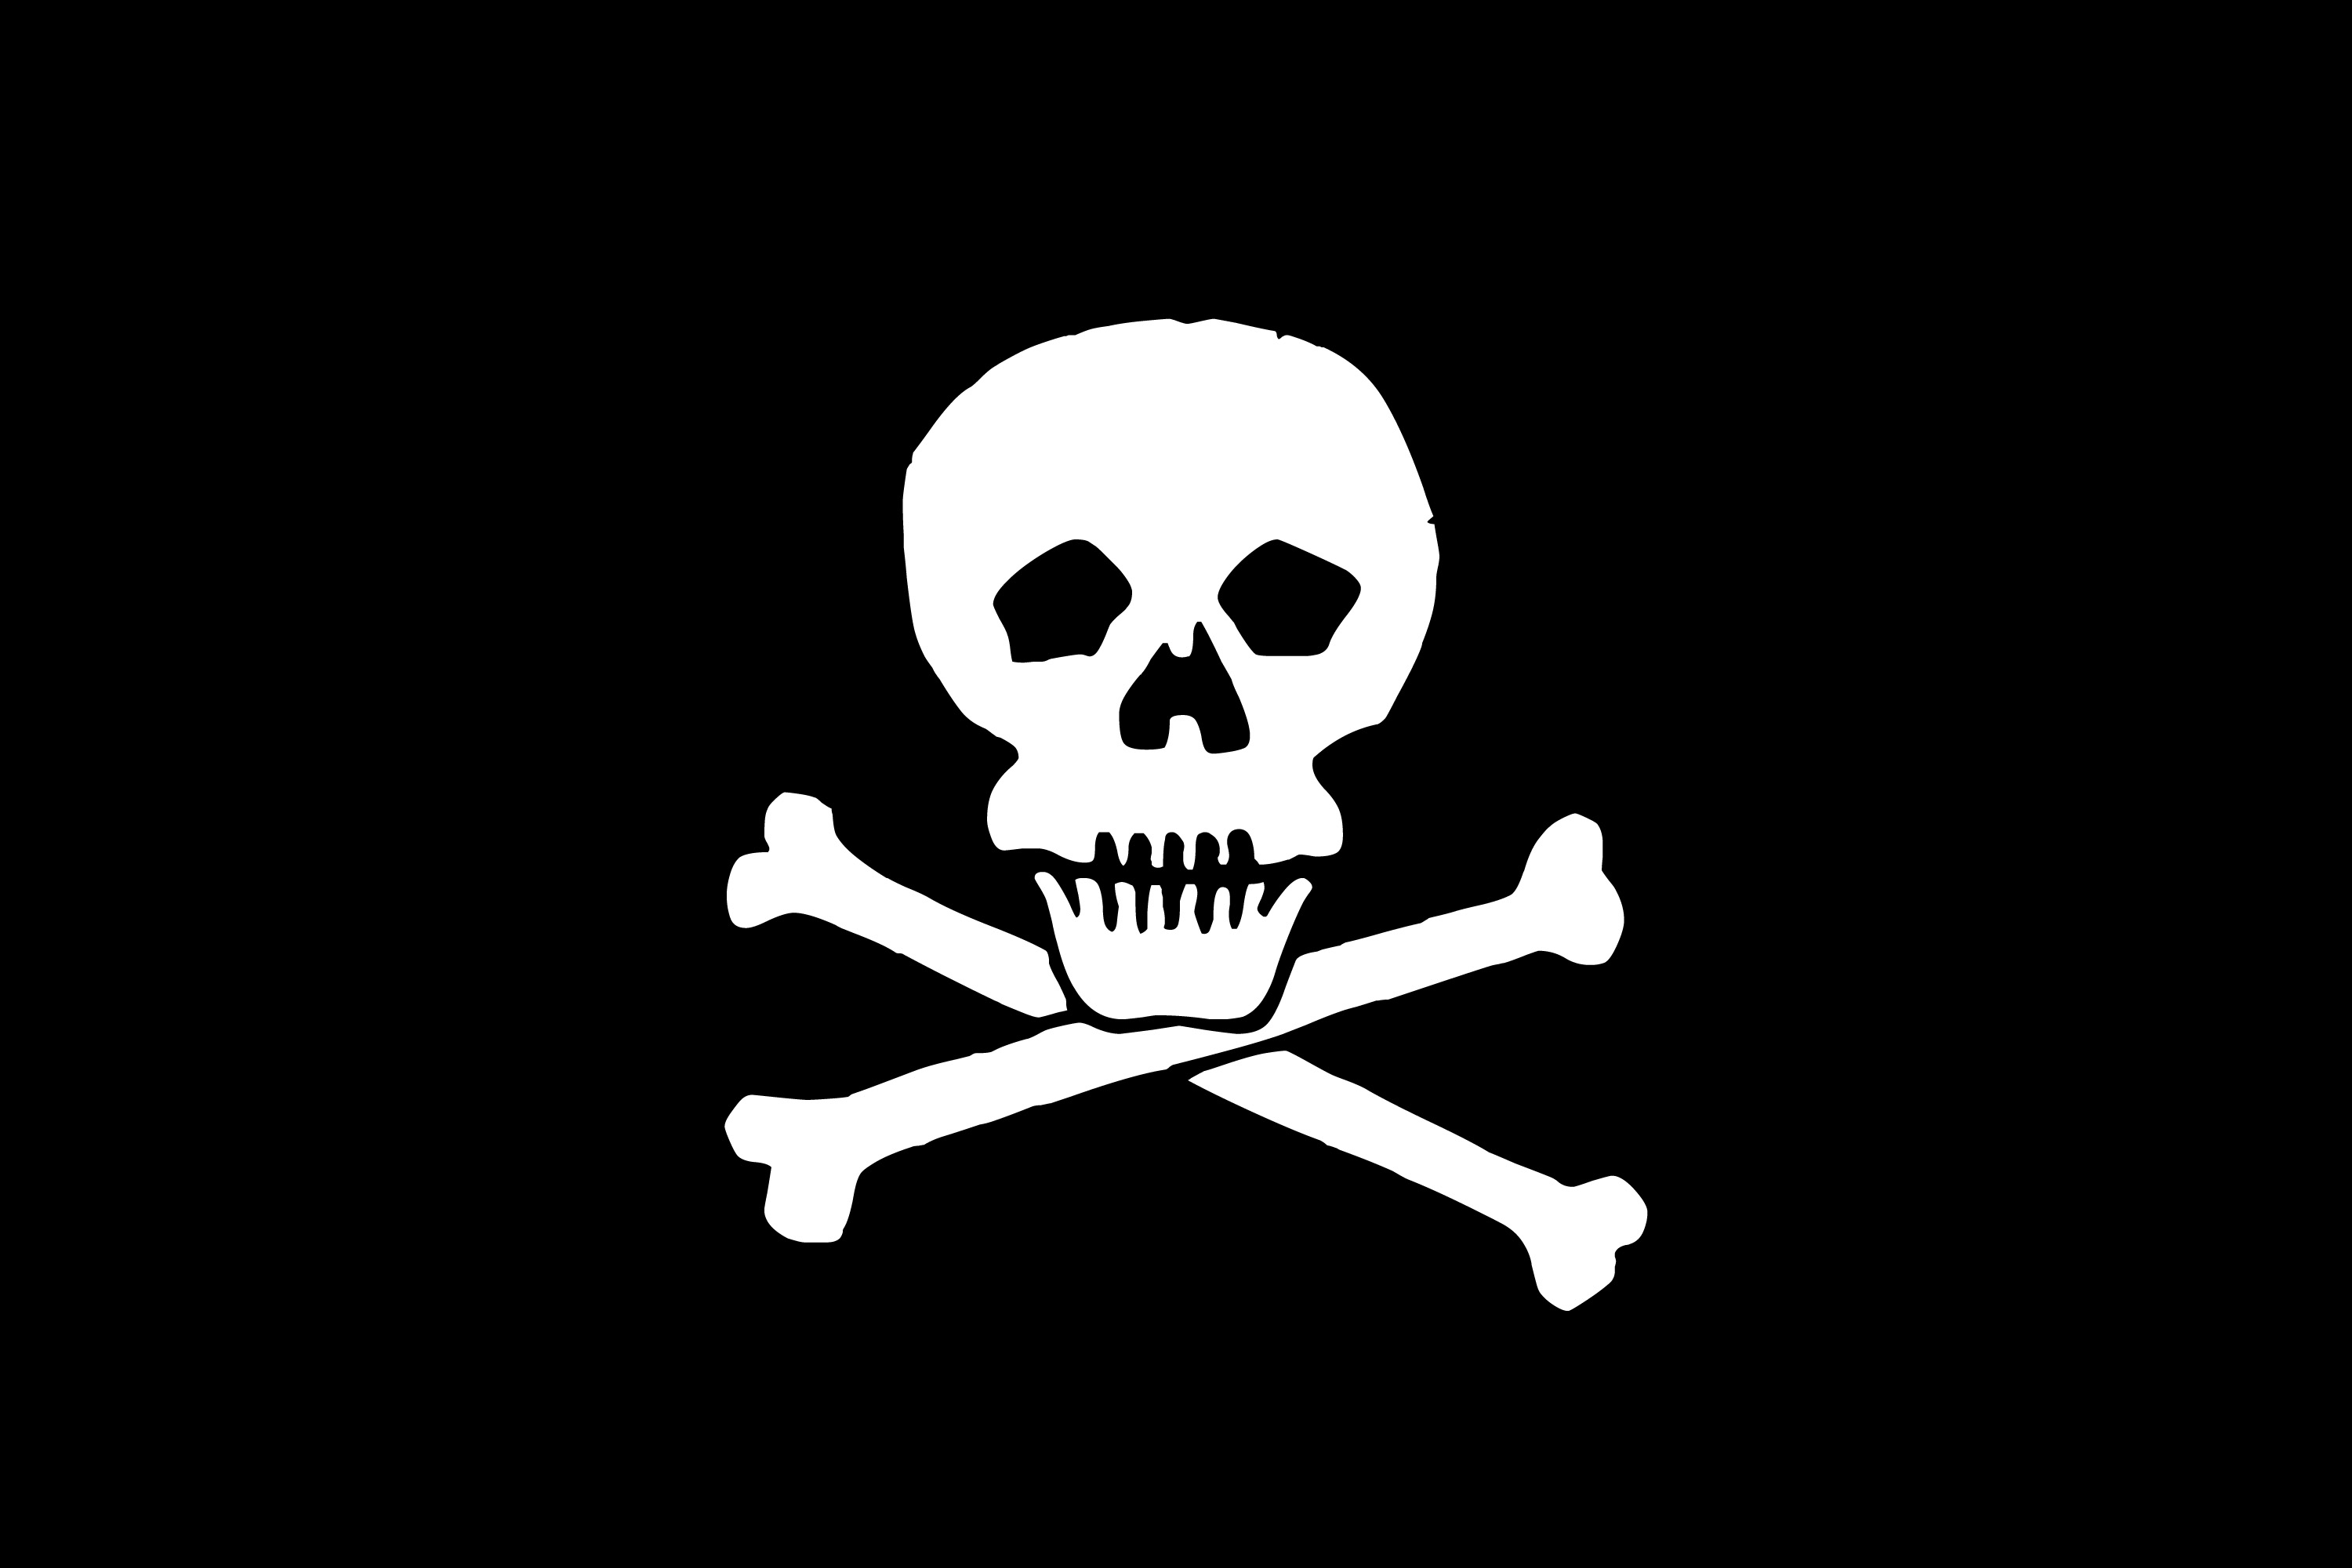 Free skull and crossbones with black background clipart. Clip art